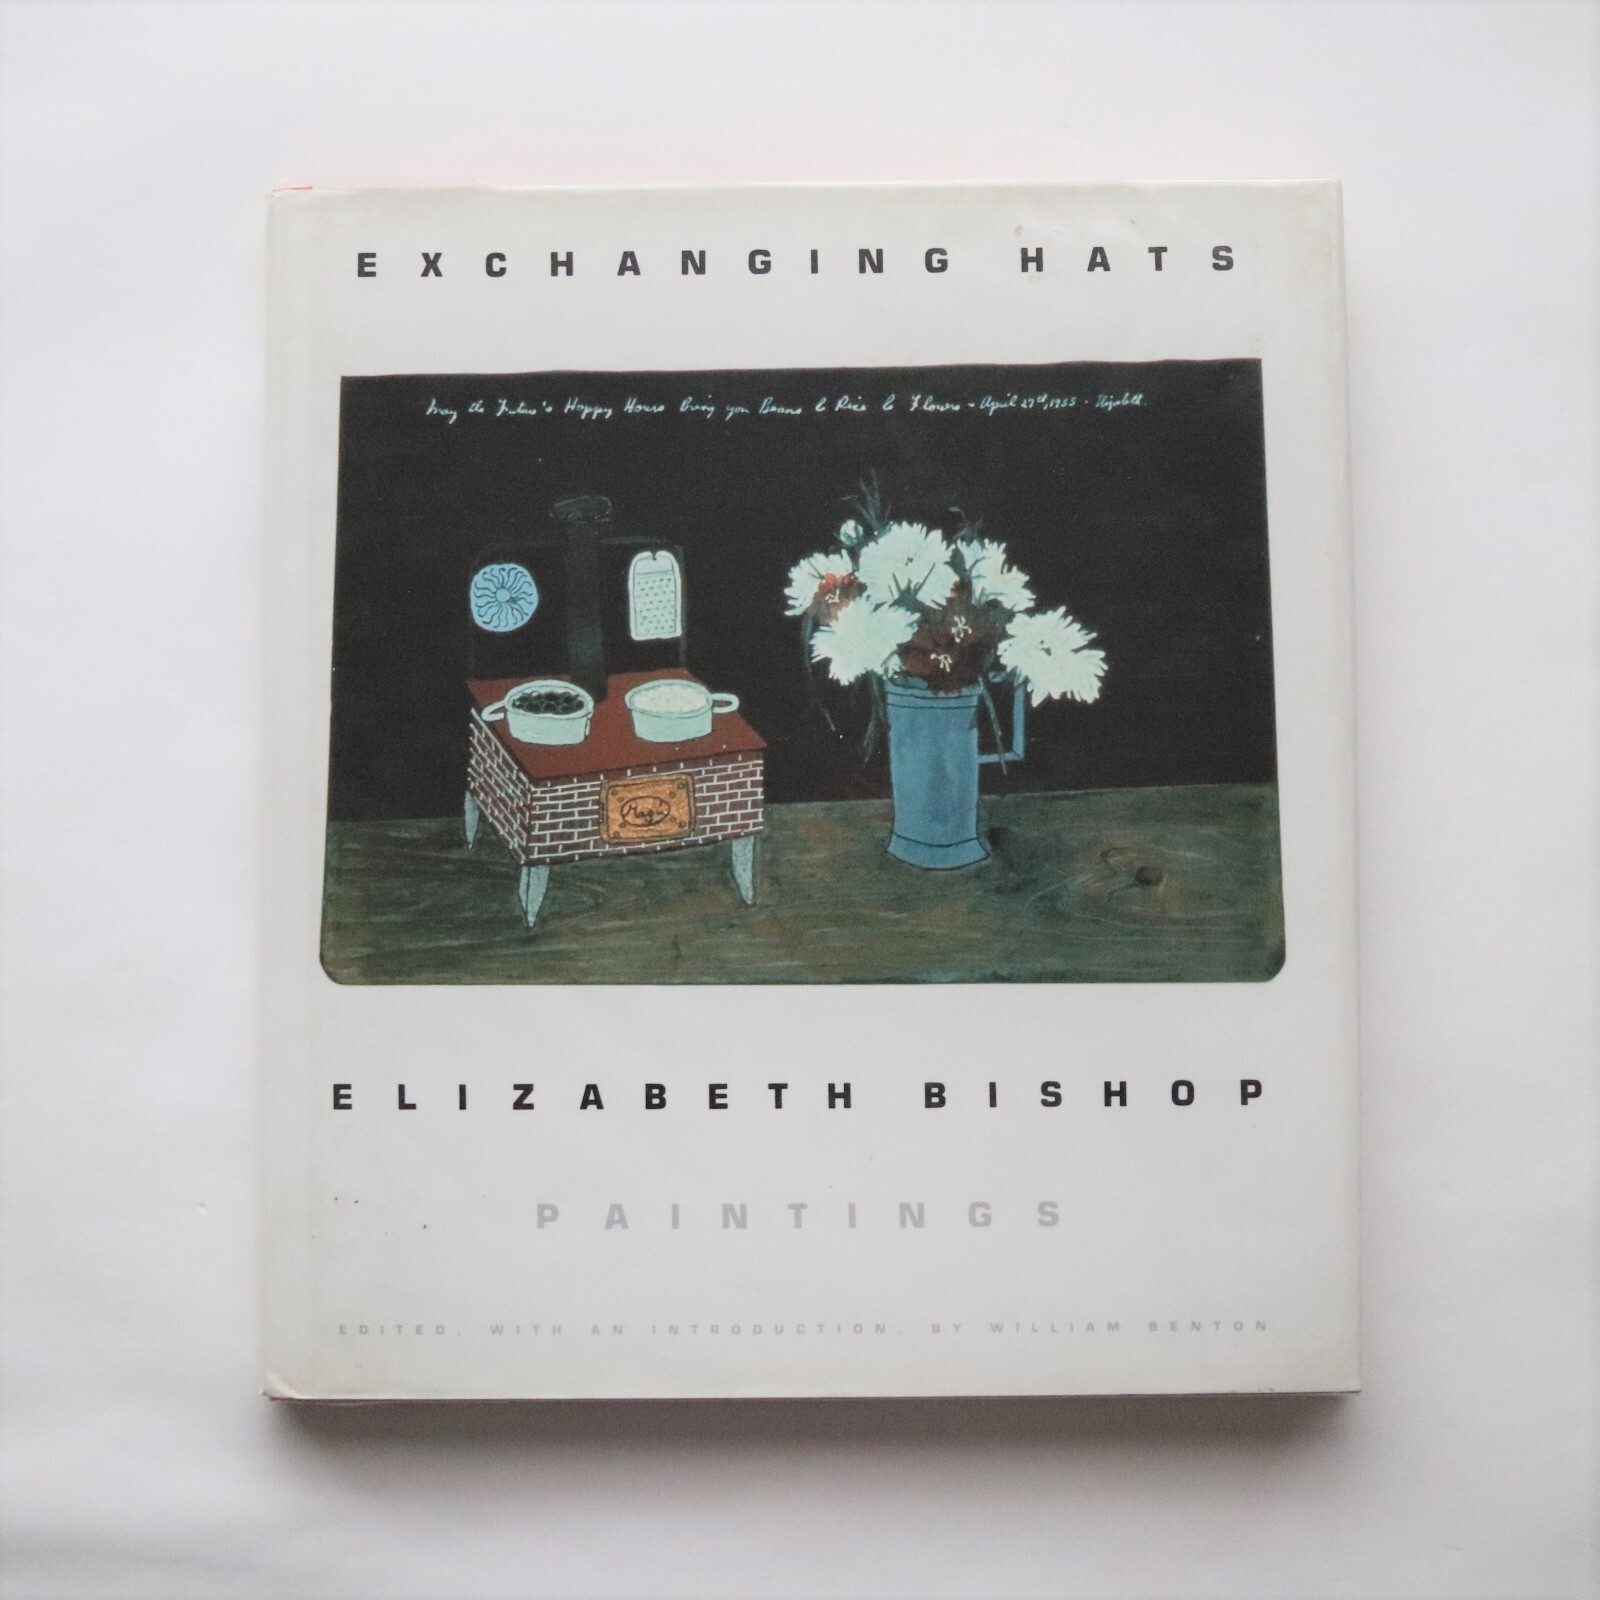 Exchanging Hats: Paintings  / Elizabeth Bishop (Author),  / William Benton